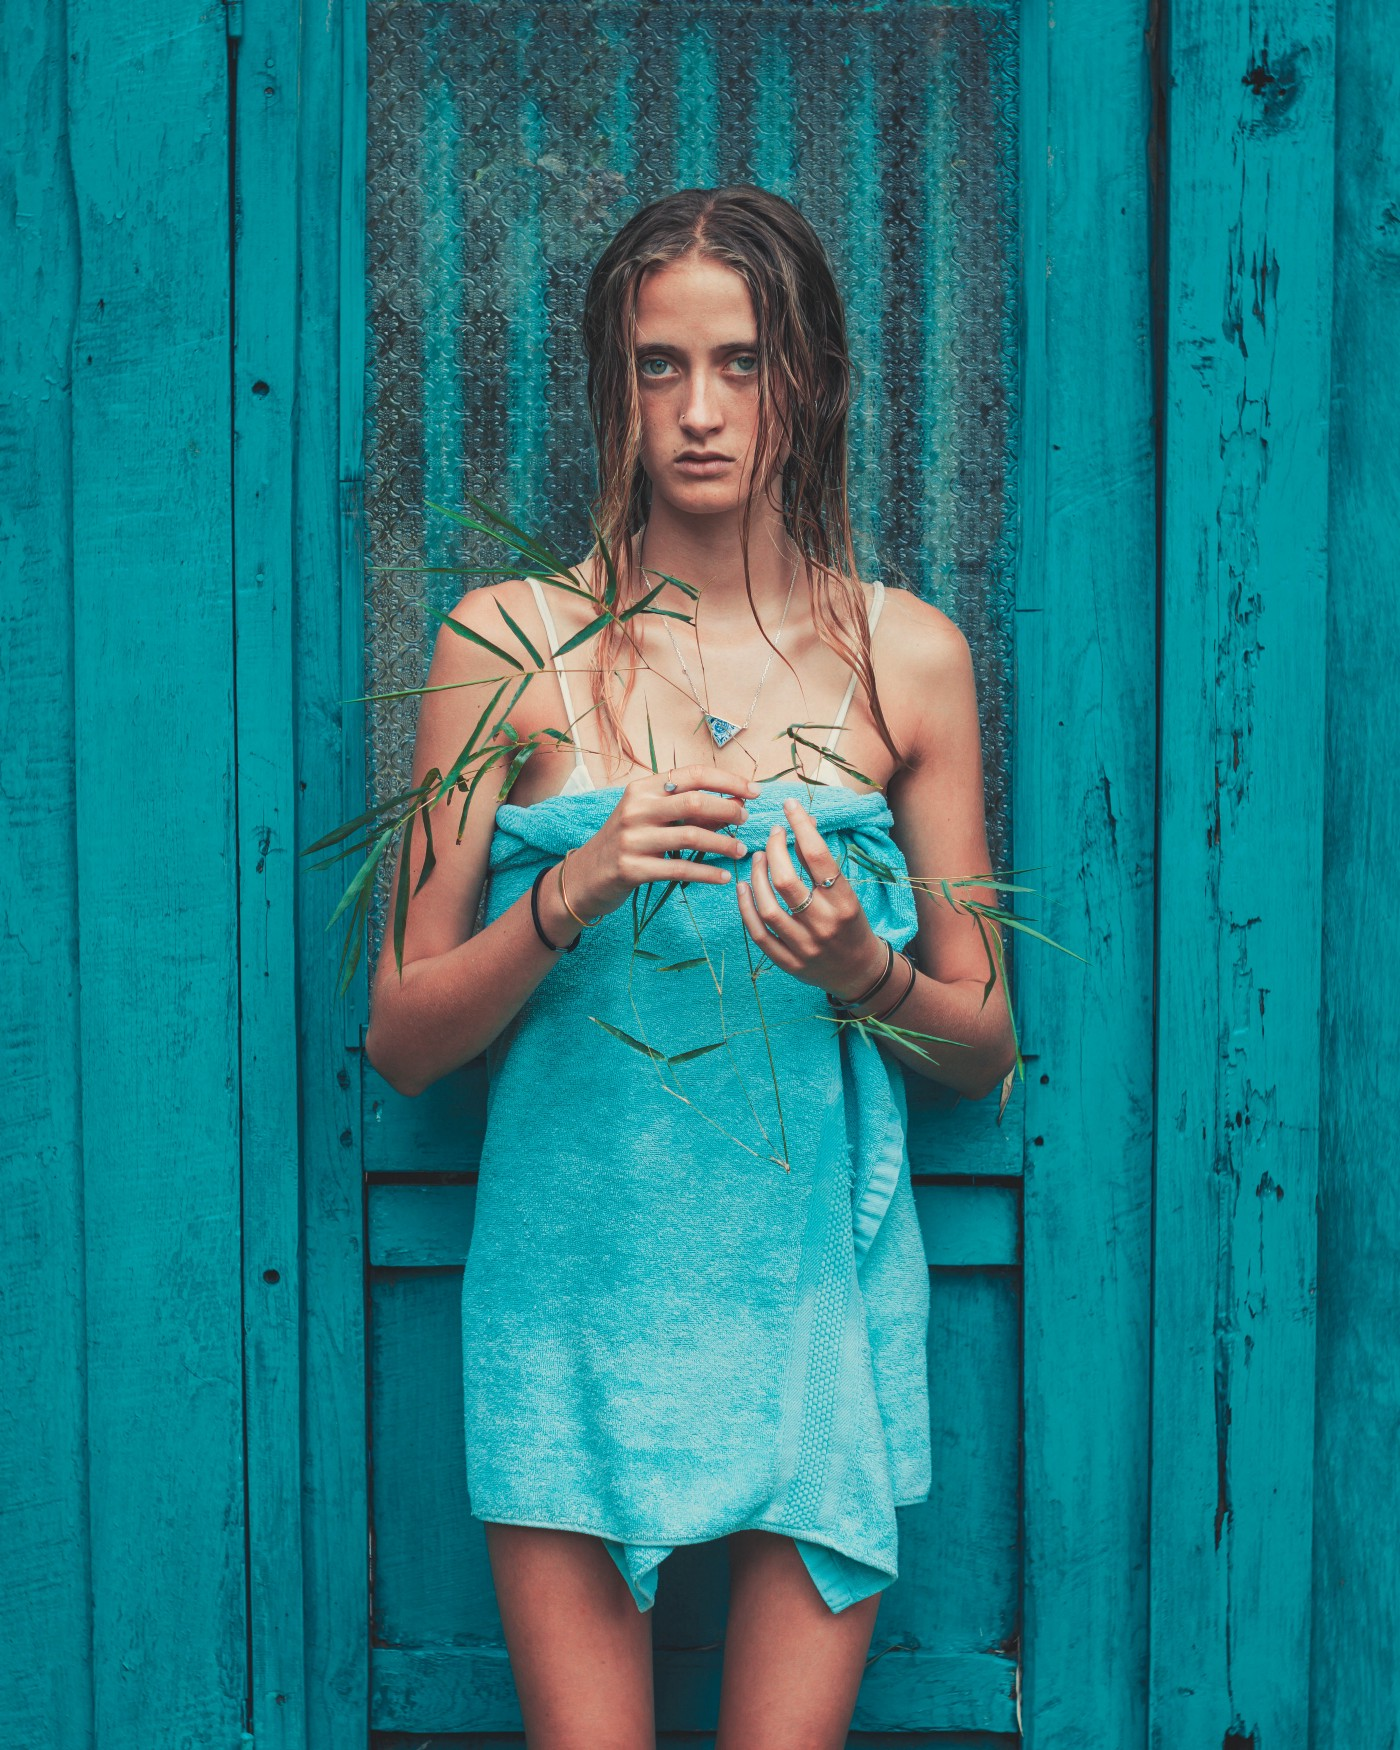 An awkward looking girl standing in front of a teal door with a teal towel wrapped around her nude body.